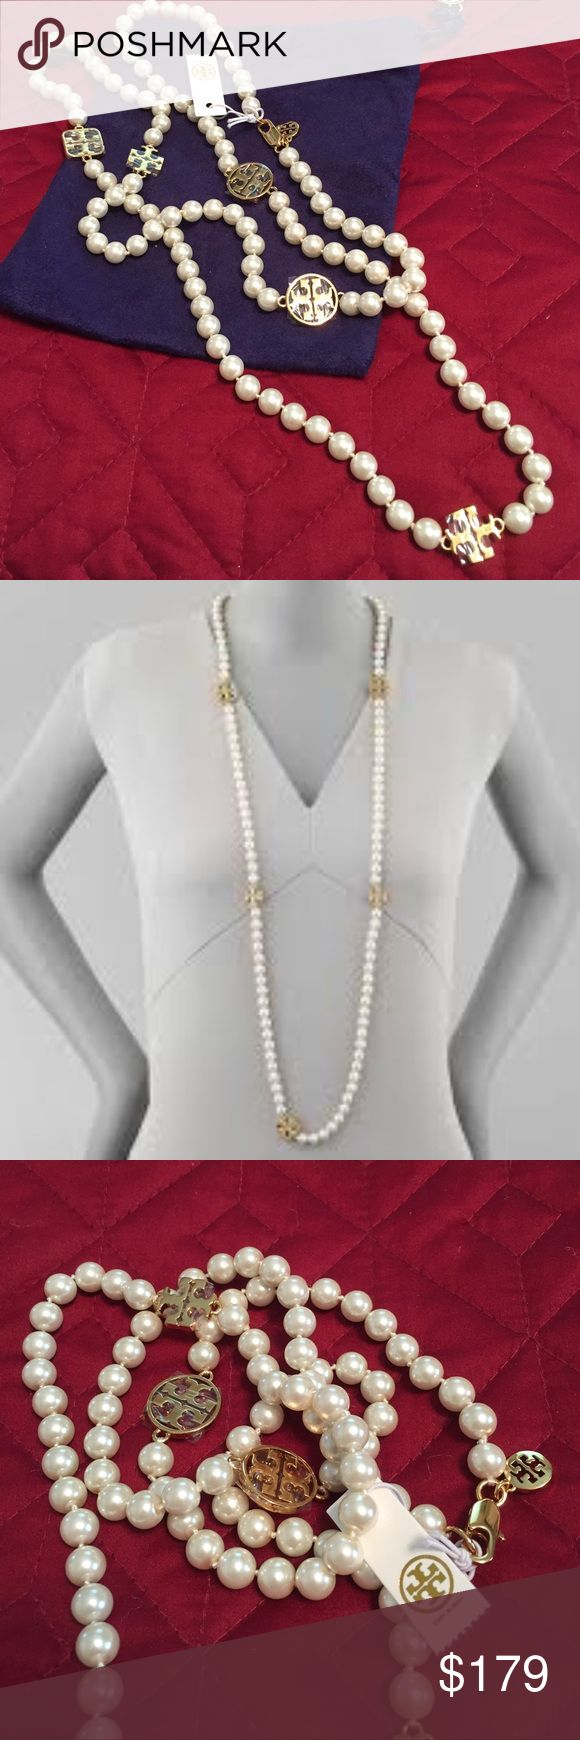 🆕Tory Burch Evie Pearl & Gold Signature necklace New with tag, never used... This classic Pearl and Gold long necklace will dress up any outfit. Beautifully crafted Ivory glass pearls can be worn as one long necklace or wrapped around twice for a double necklace. The gold plated Double-T shaped logo charms are the perfect size with a lobster claw closure. Comes in a Tory Burch box and blue velvet Tory Burch pouch. Approximate Measurements: 42 inches entire length. Sold online at Nordstrom…